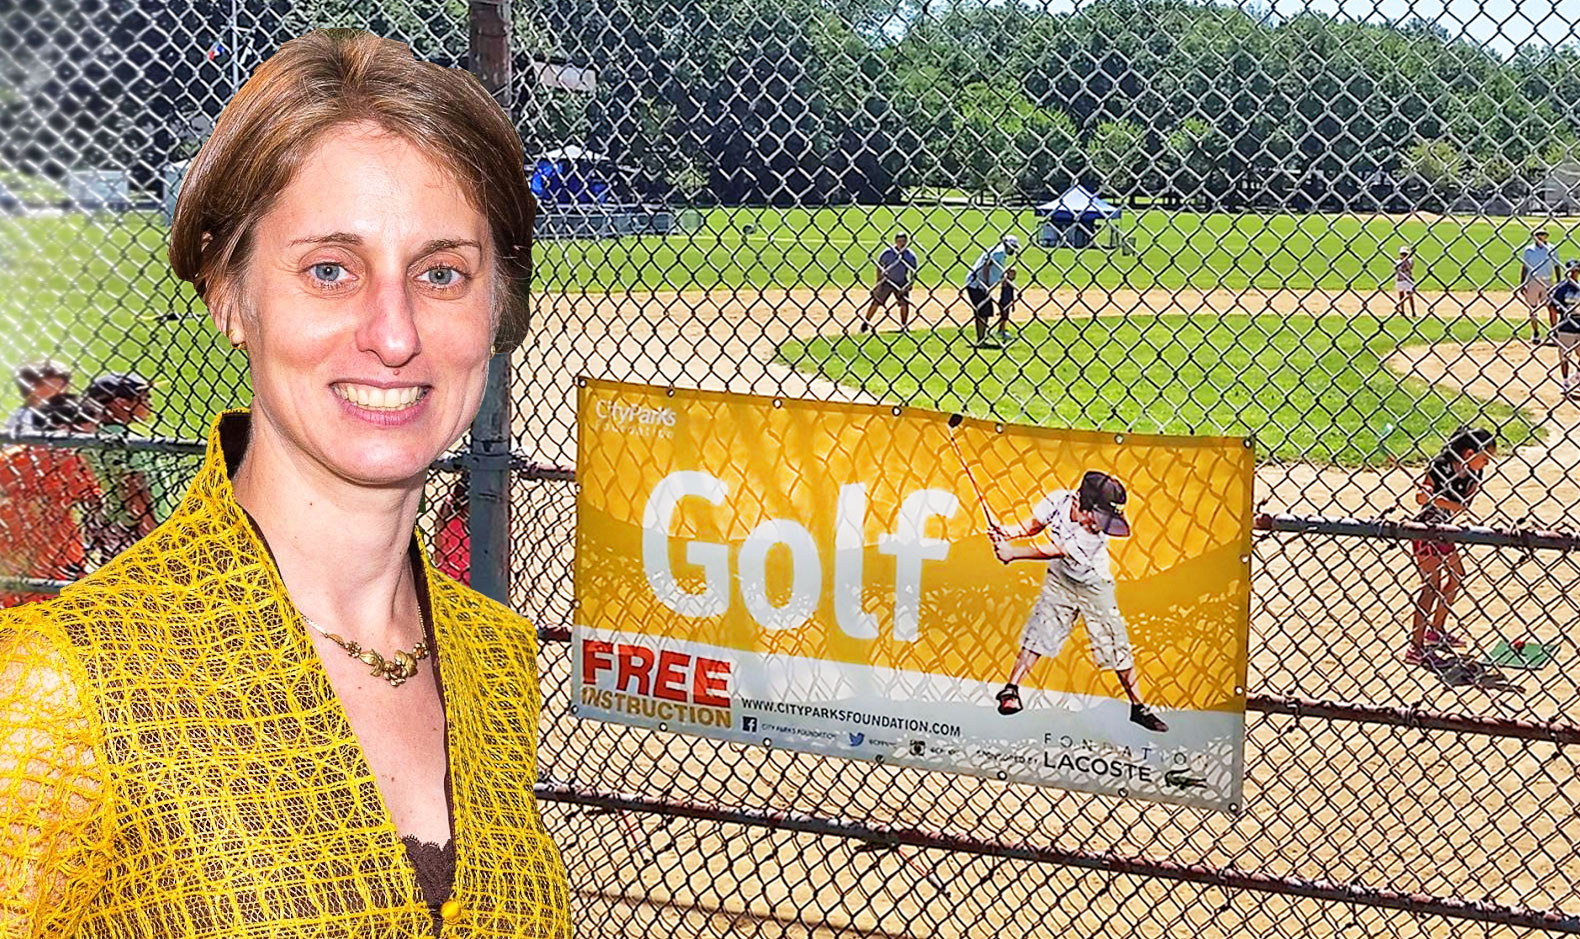 INTERVIEW: City Parks Foundation's Heather Lubov on transforming baseball diamonds into golf schools